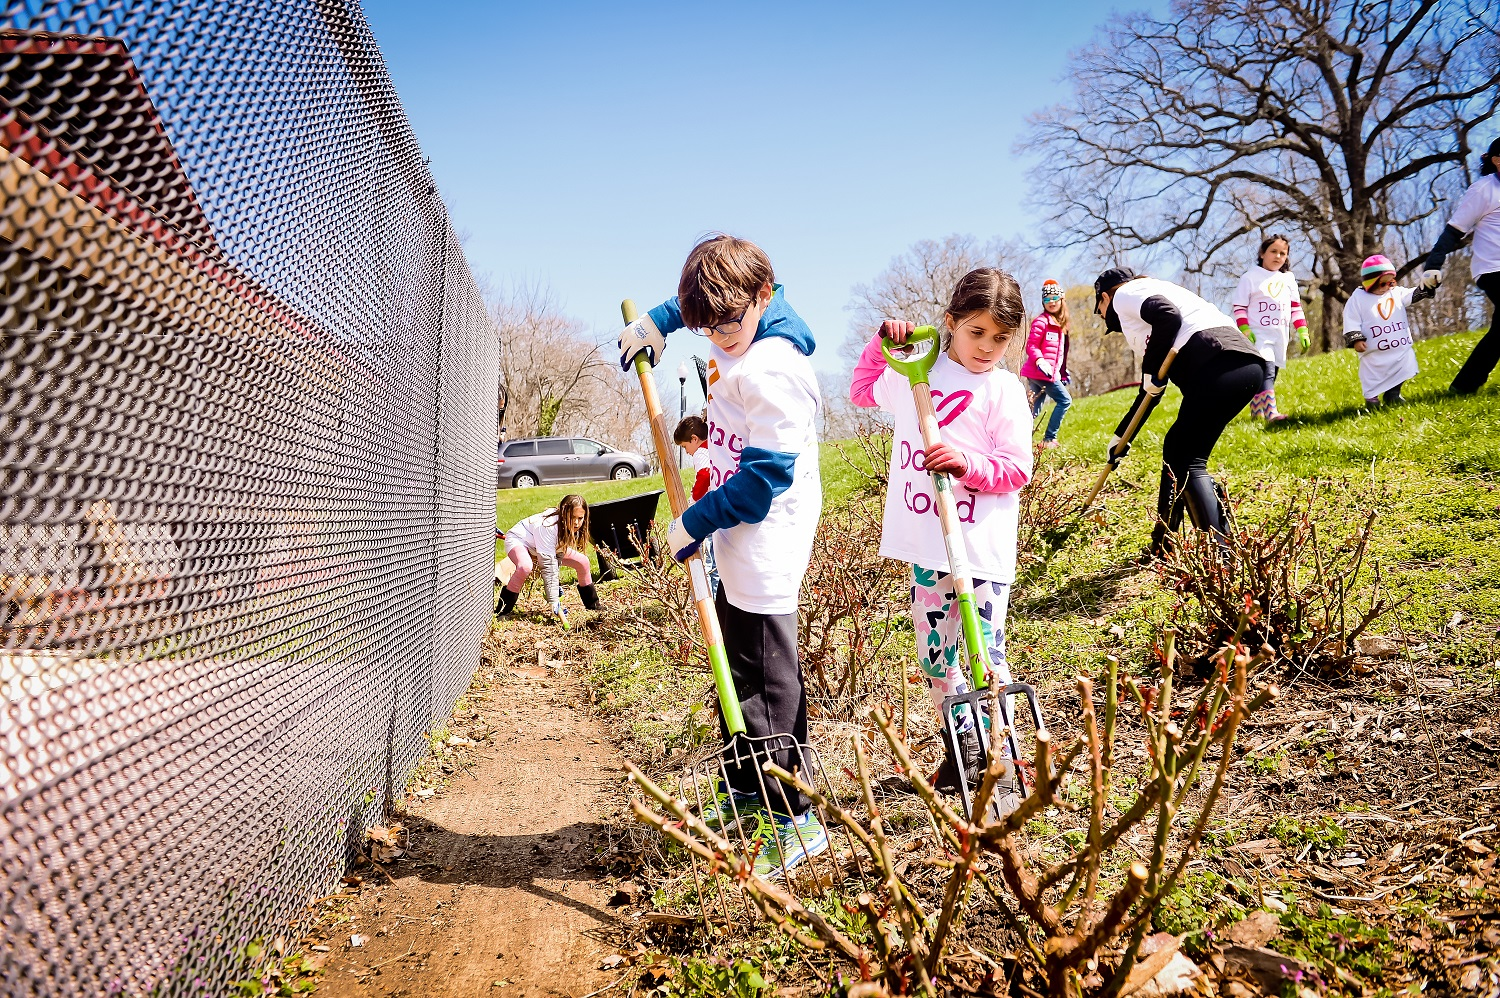 What Does Environment Have To Do With >> Environmental Projects You Can Do On Good Deeds Day Good Deeds Day